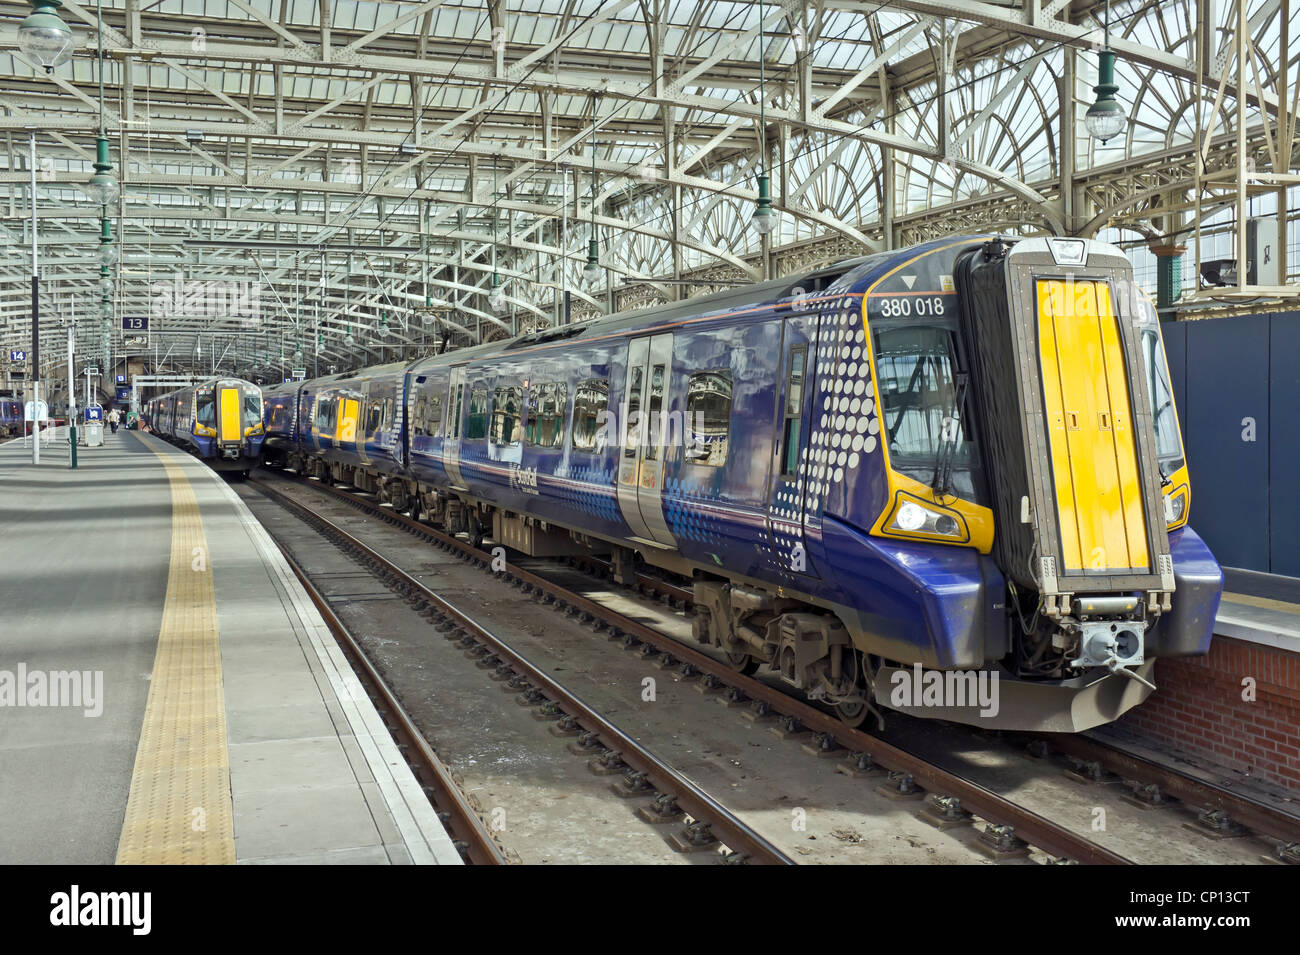 New Scotrail Class 380 EMU in Glasgow Central Station at platforms 12 and 13 - Stock Image